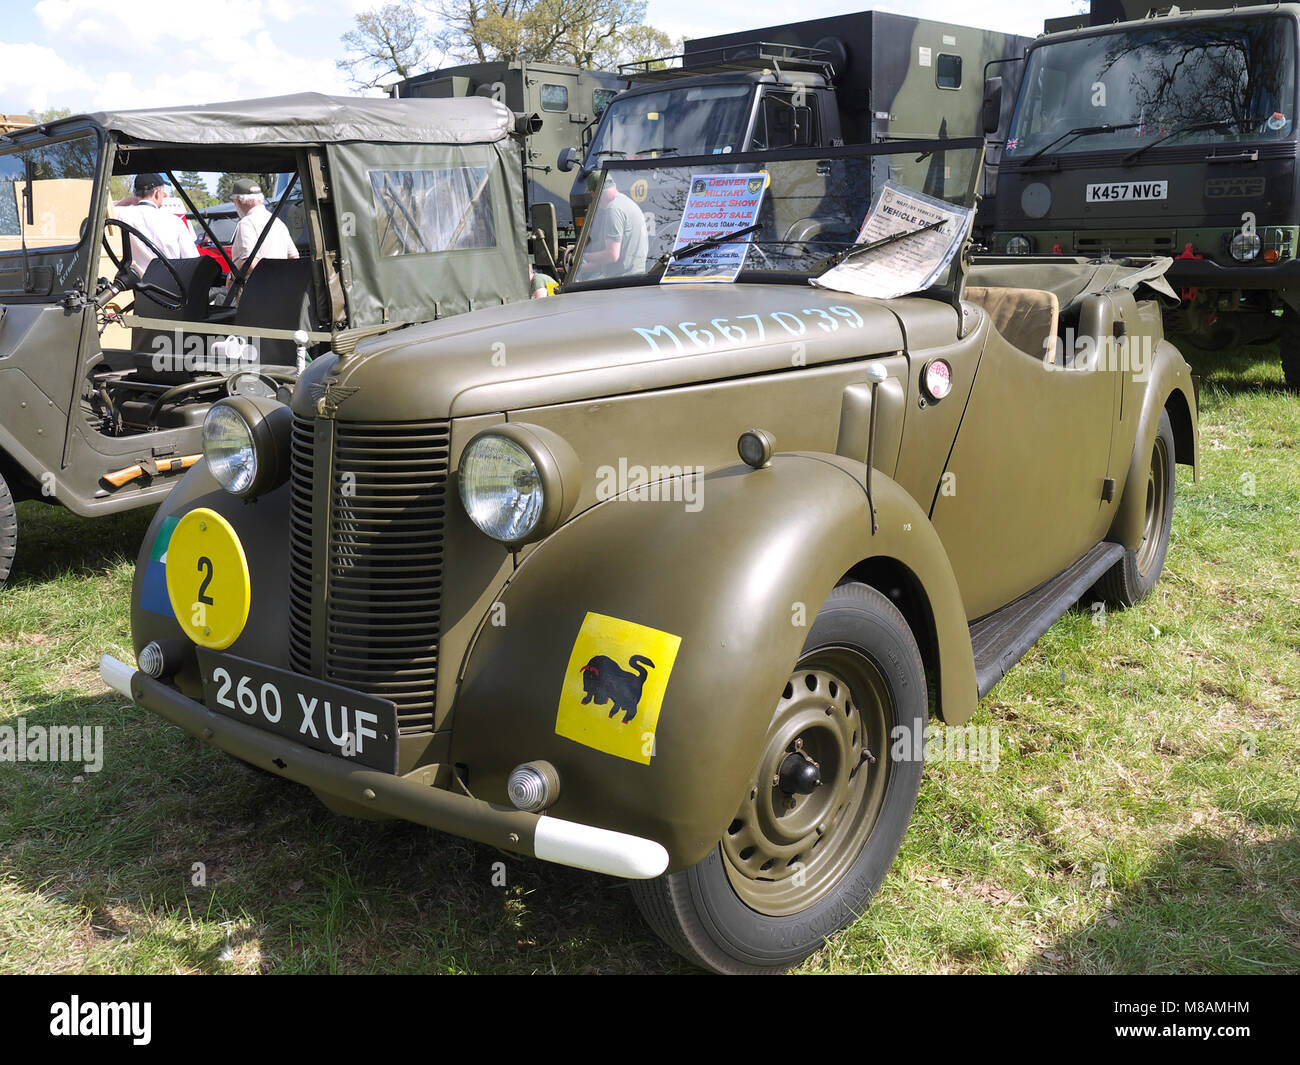 Vintage military staff car, Stradsett rally, Norfolk Stock Photo